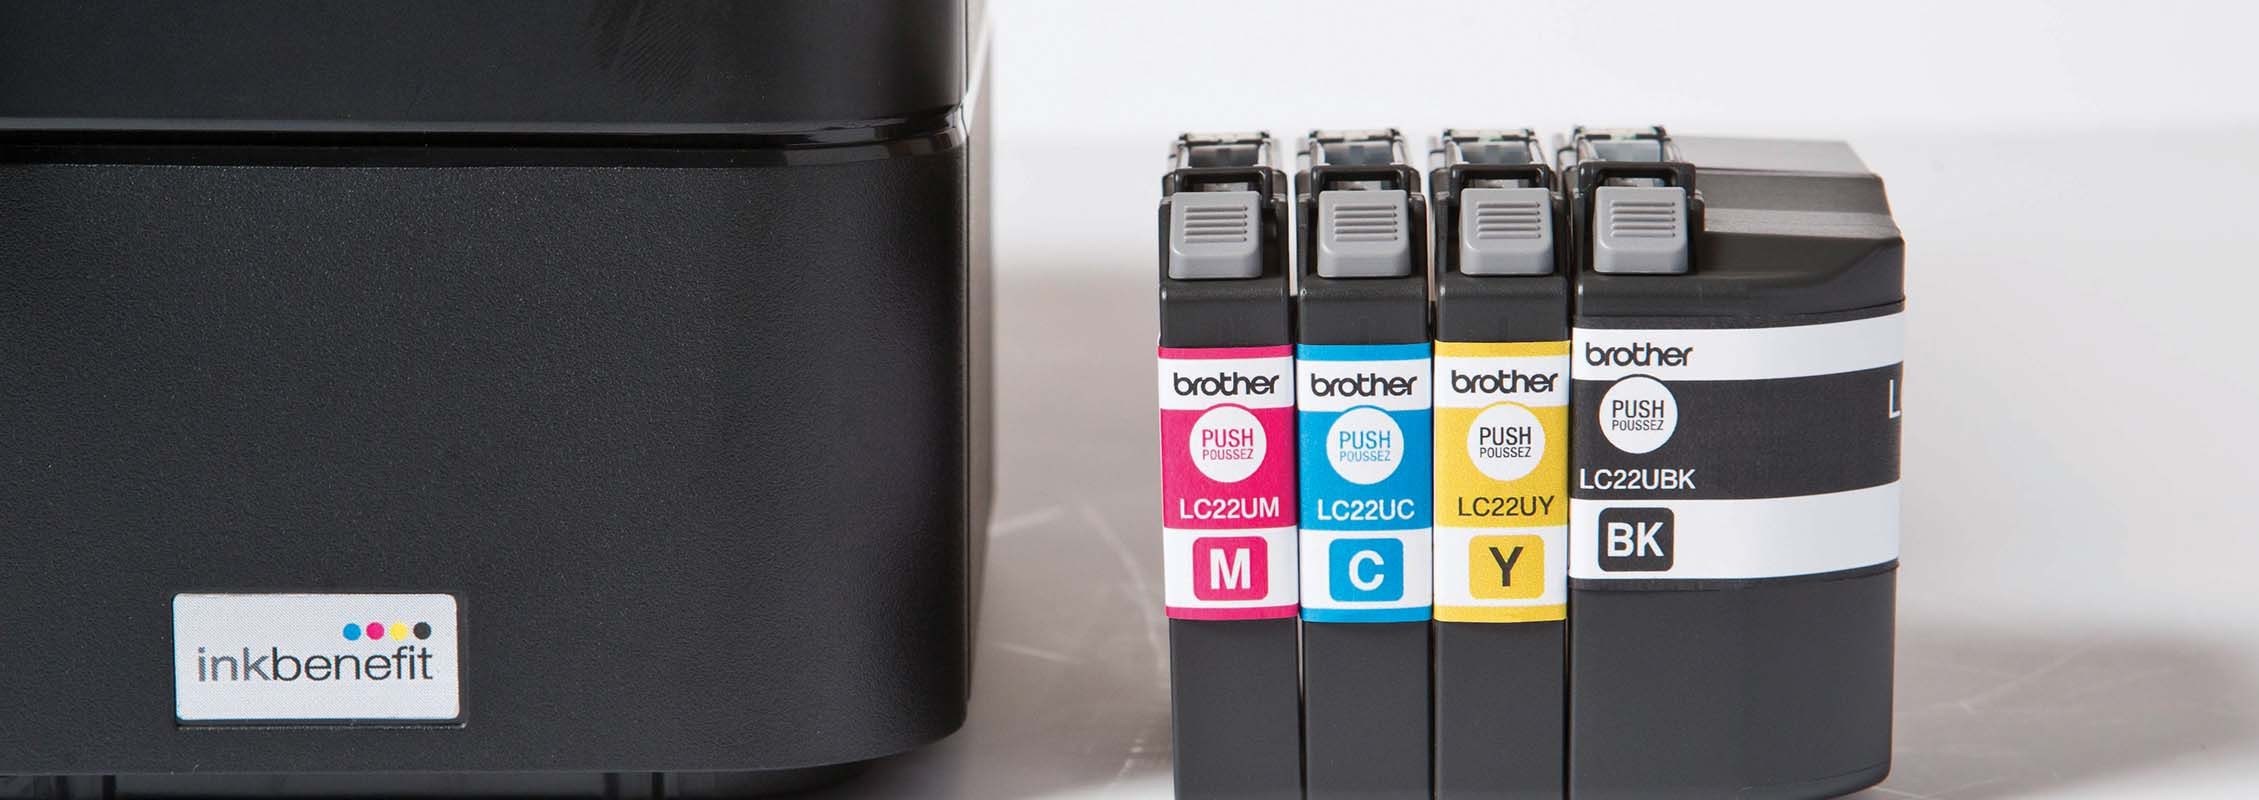 Zoomed image of Brother Inkjet printer and ink cartridges